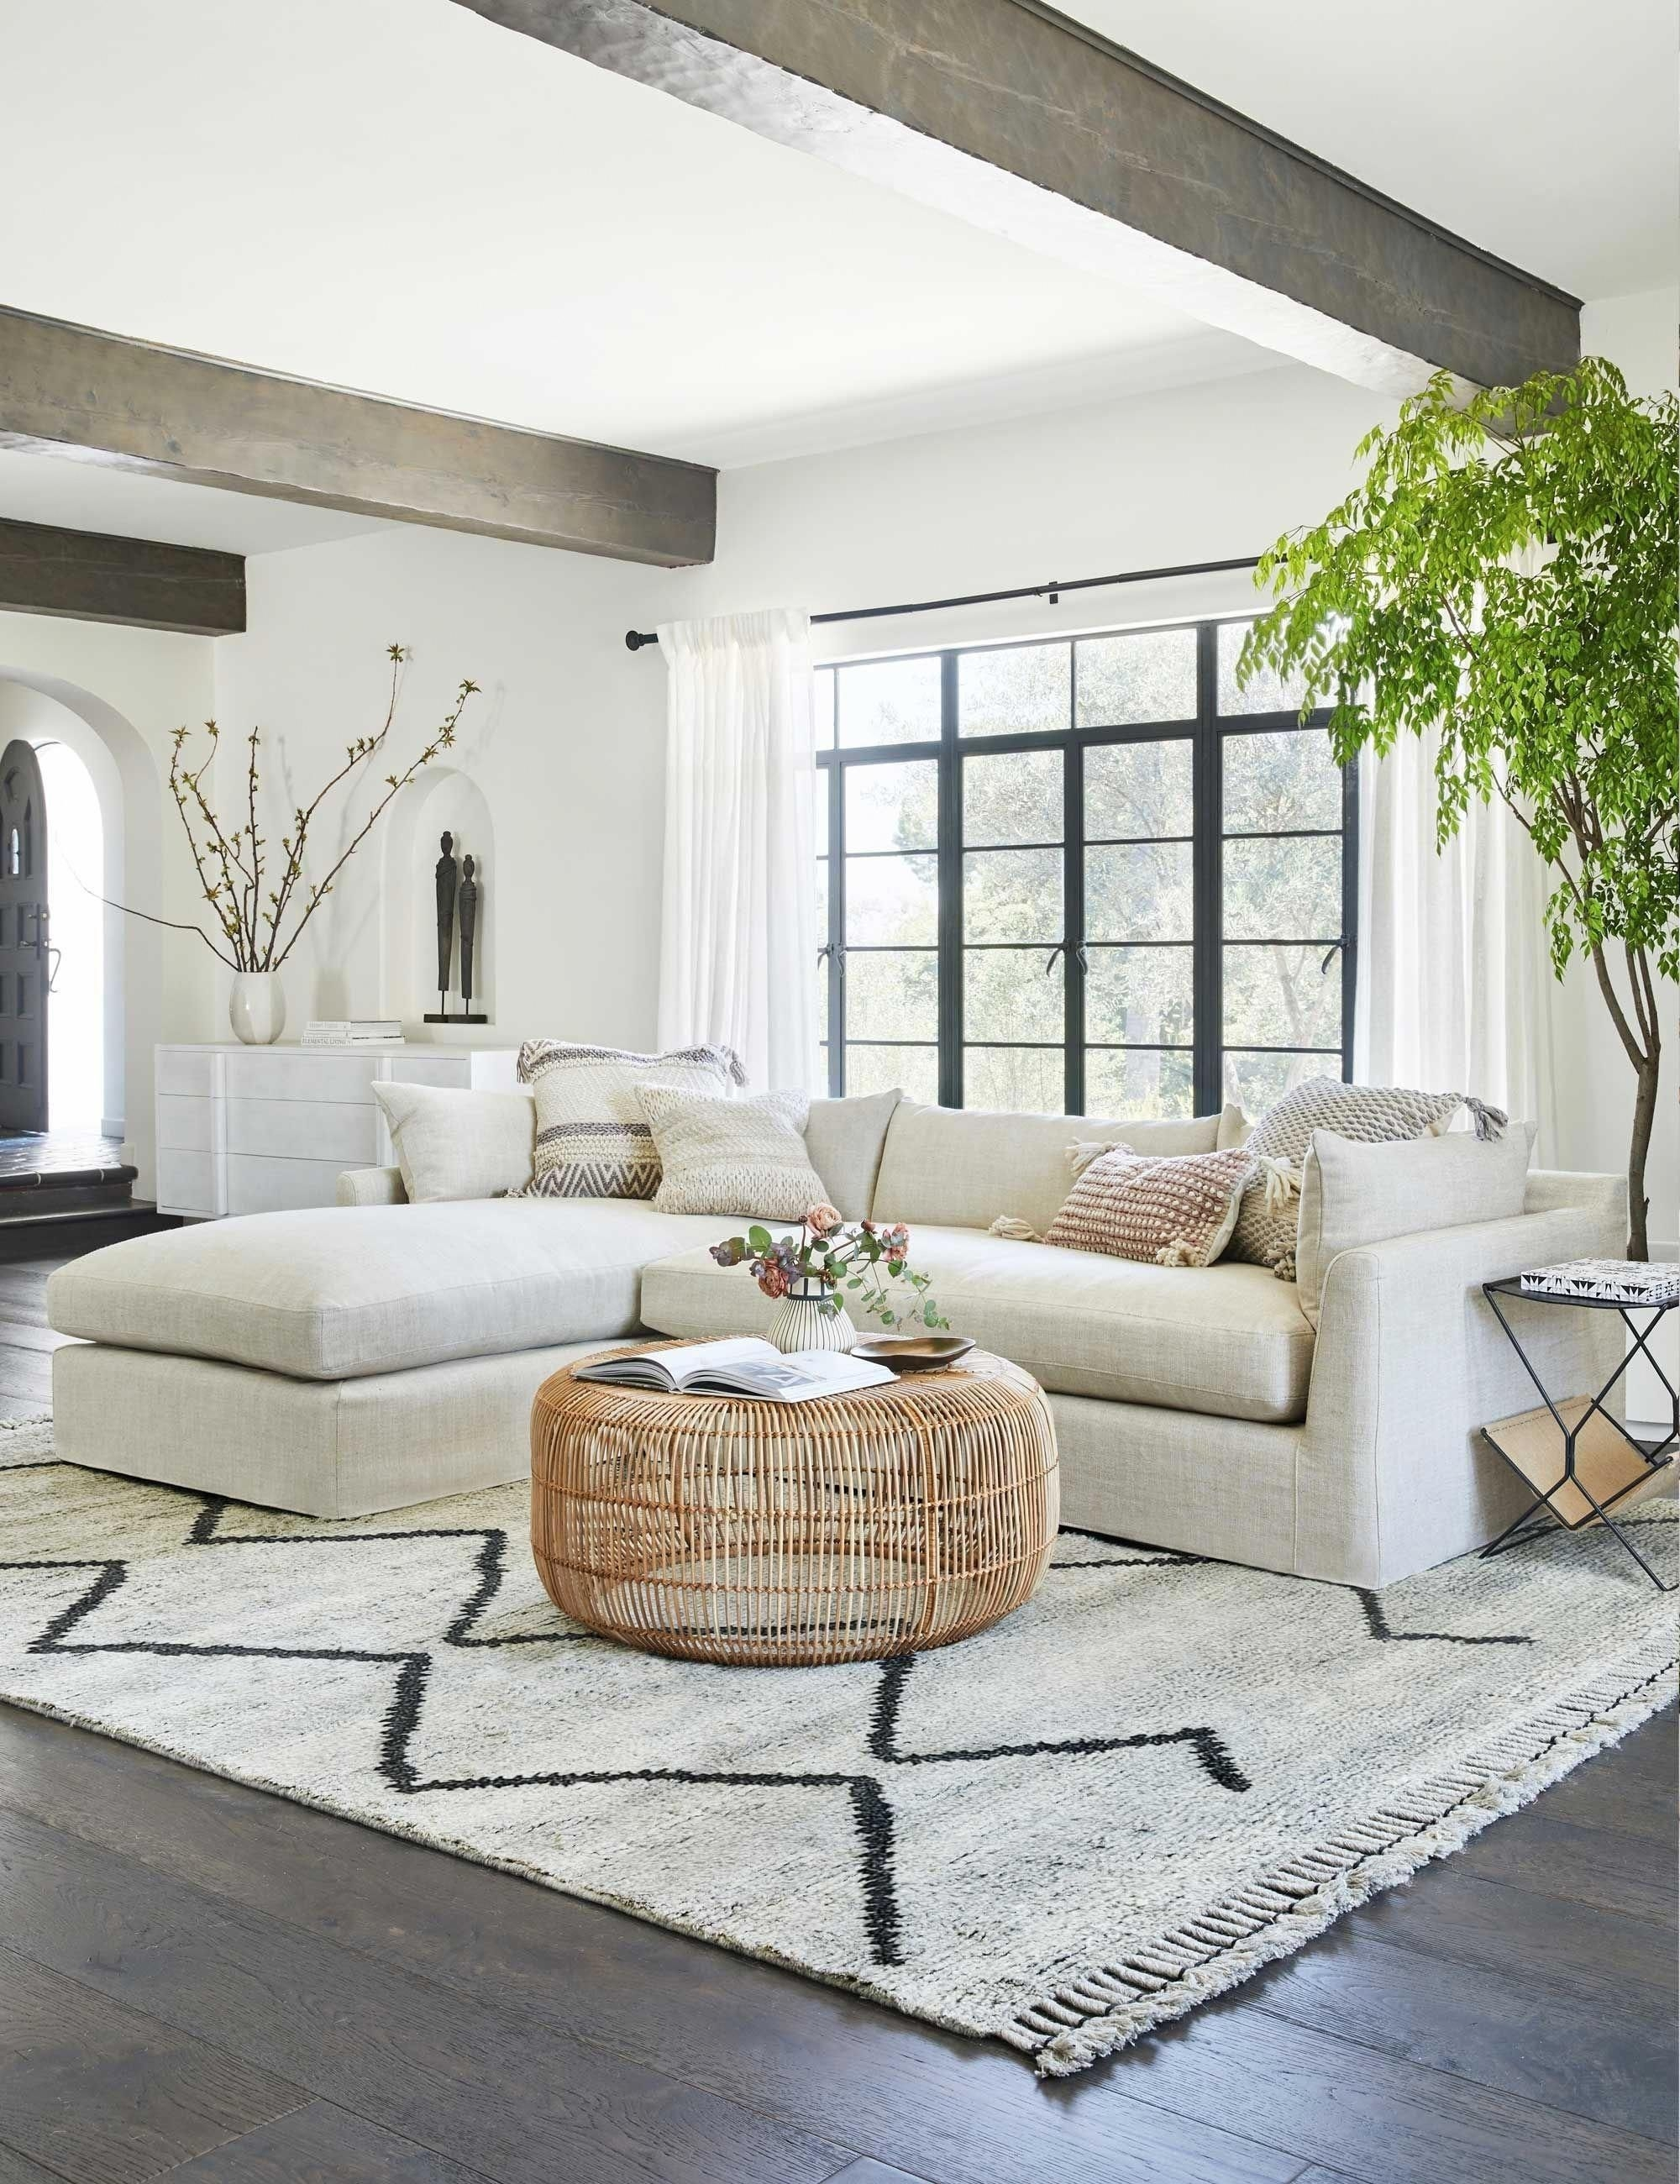 Awesome Living Room Wood Floor Decoration Ideas That You Need To Try 46